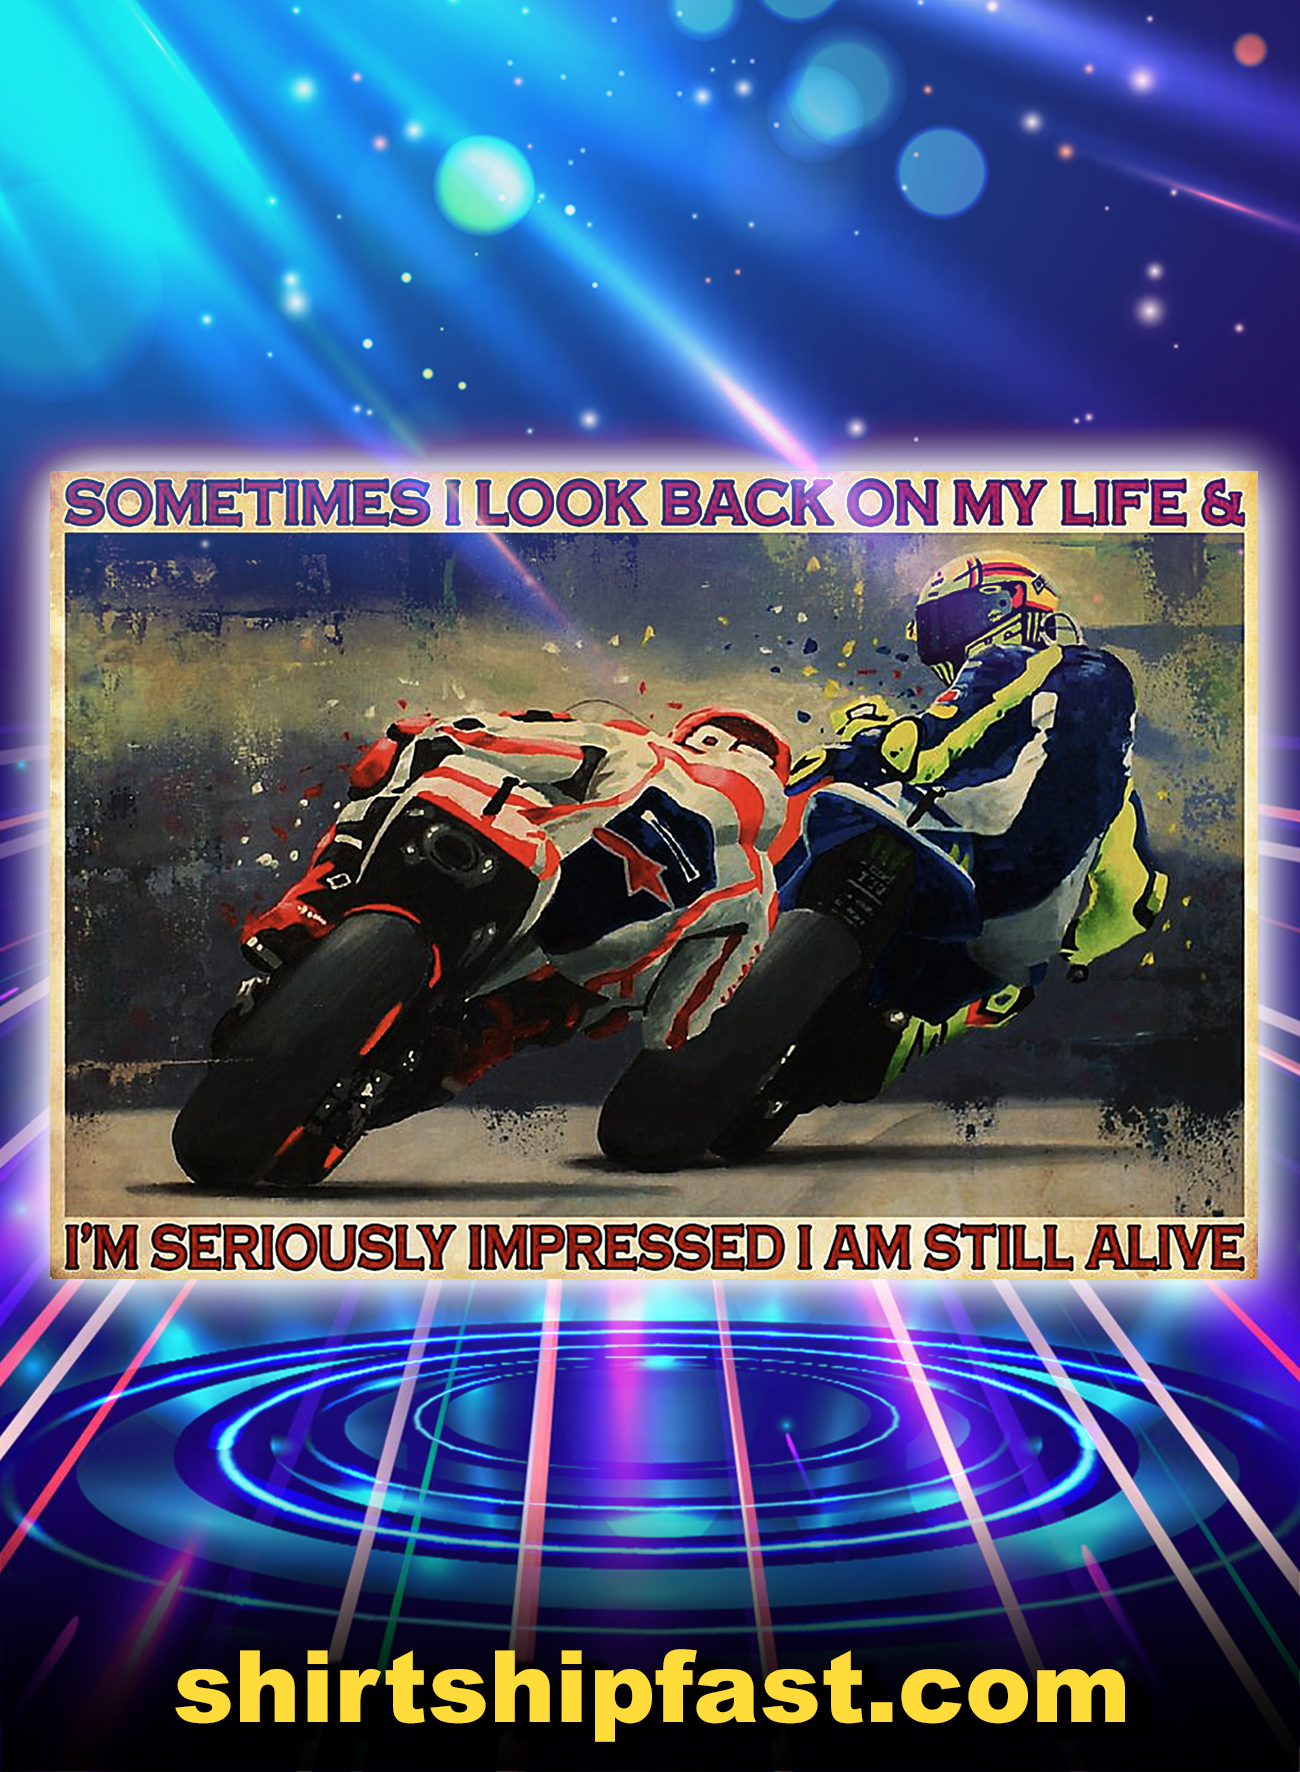 Motorcycle racing sometimes i look back on my life poster - A4